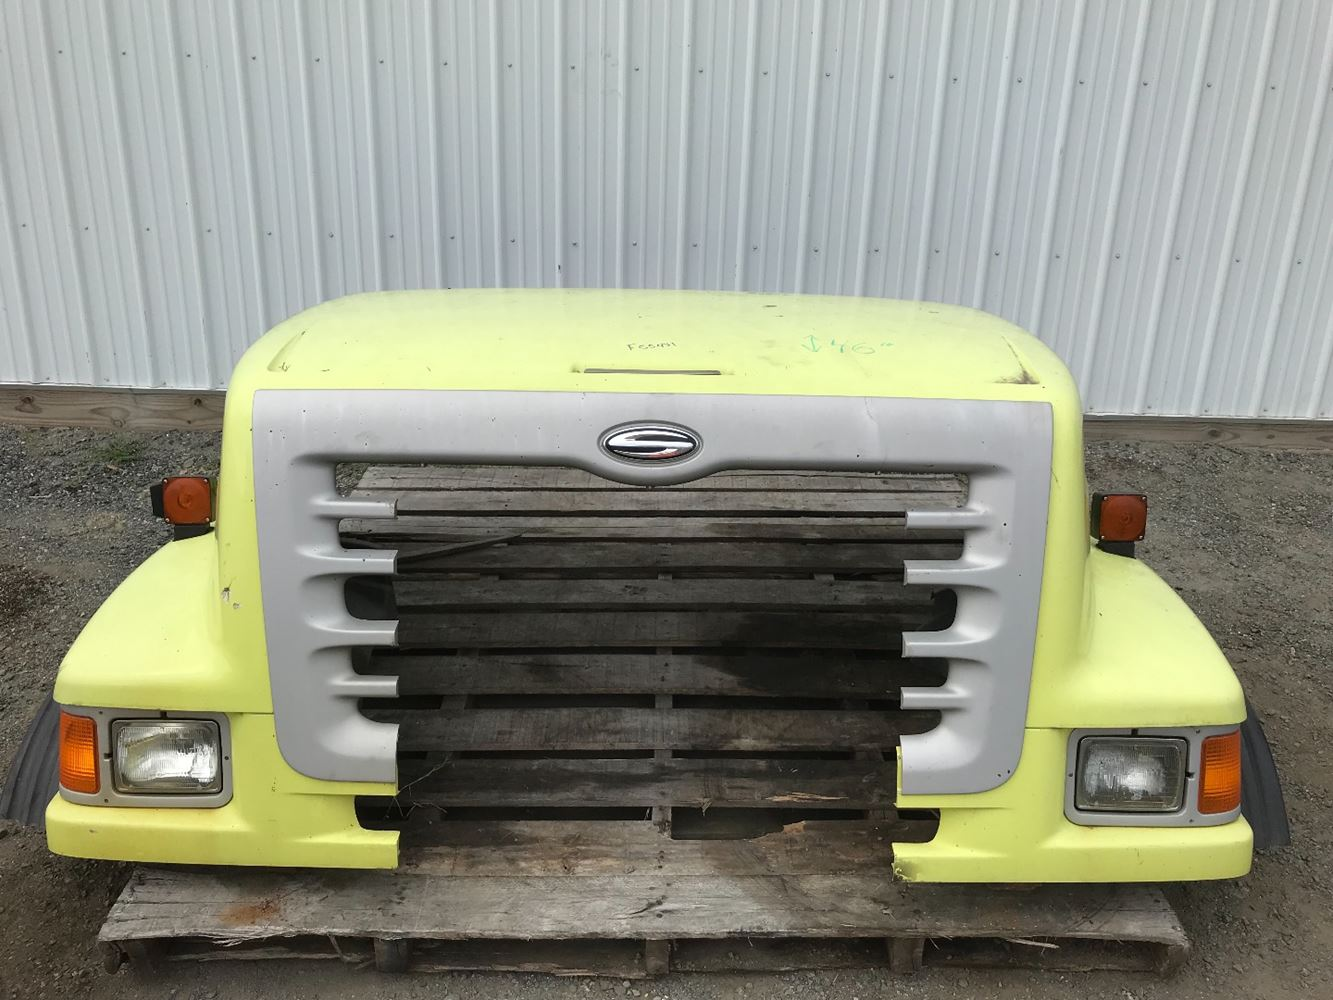 2004 STERLING L9500 HOOD TRUCK PARTS #680219